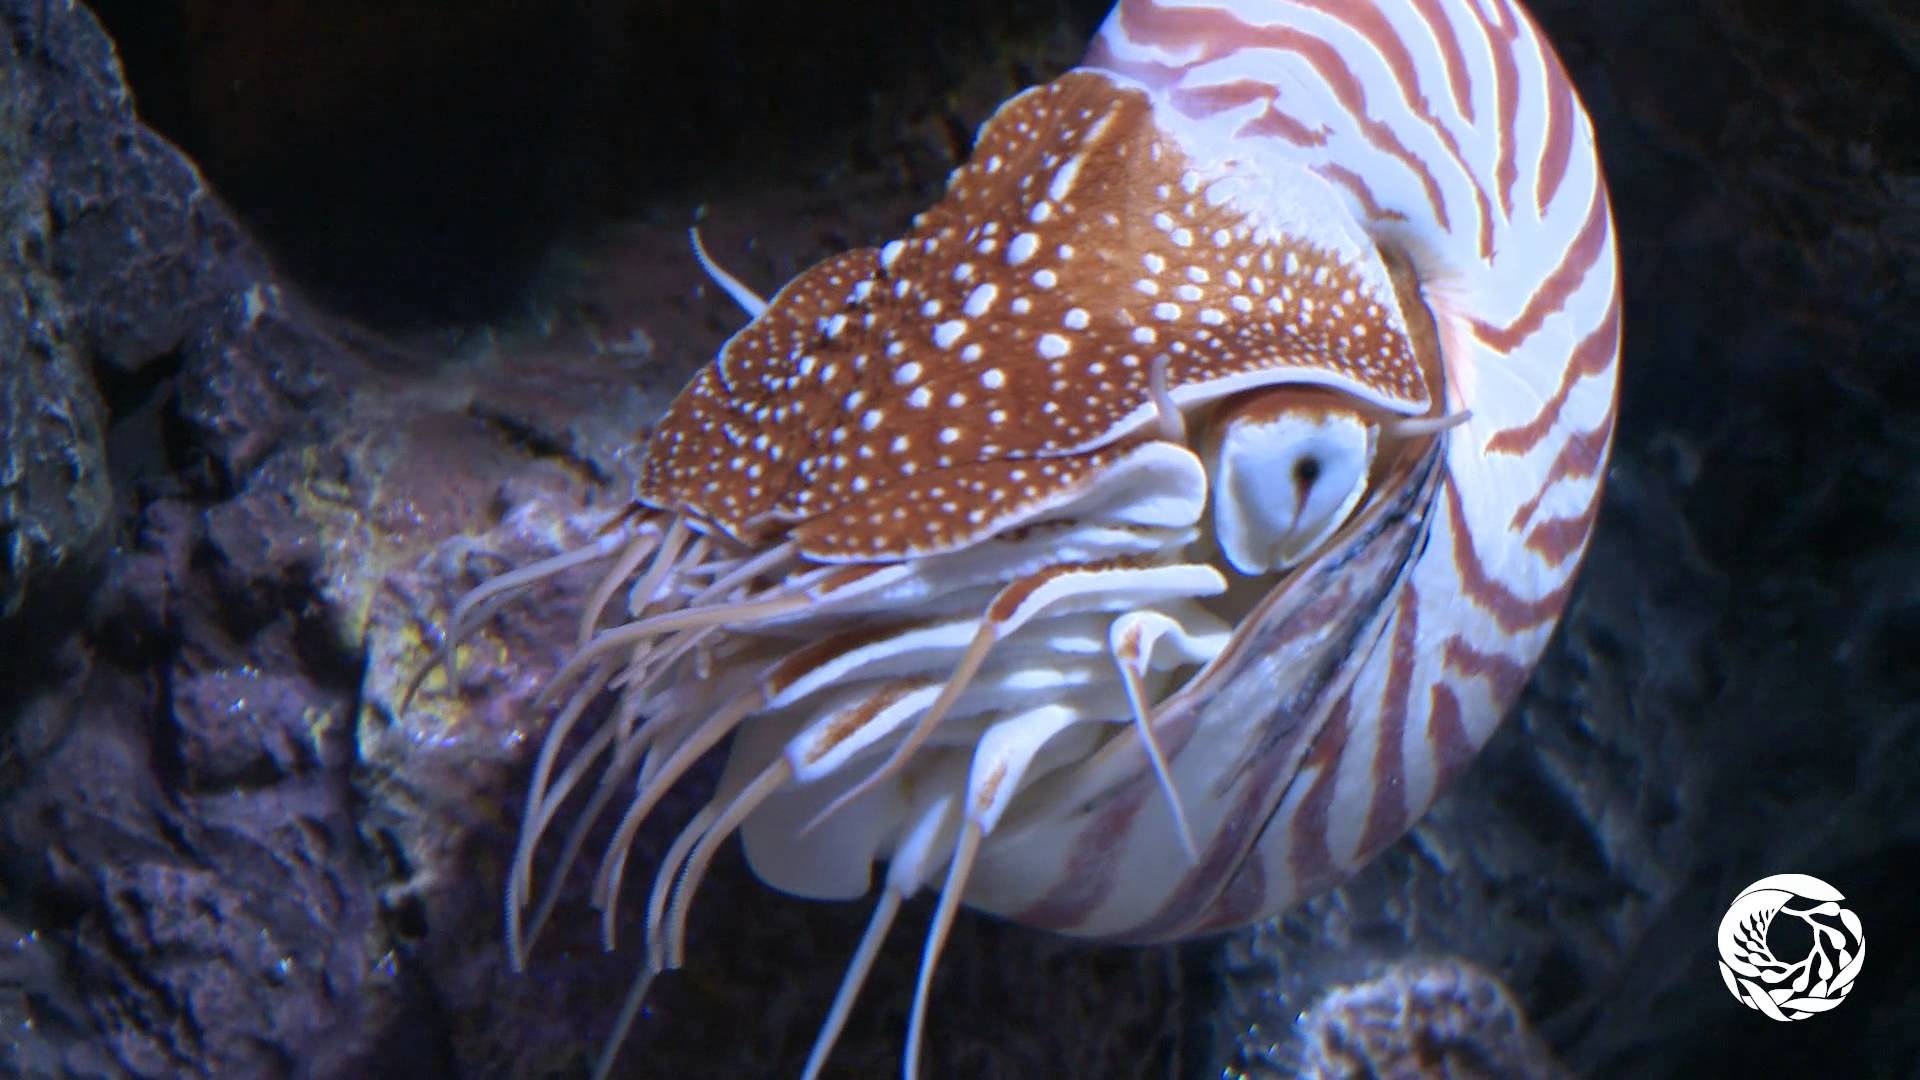 The Chambered Nautilus: A Living Link With the Past - YouTube